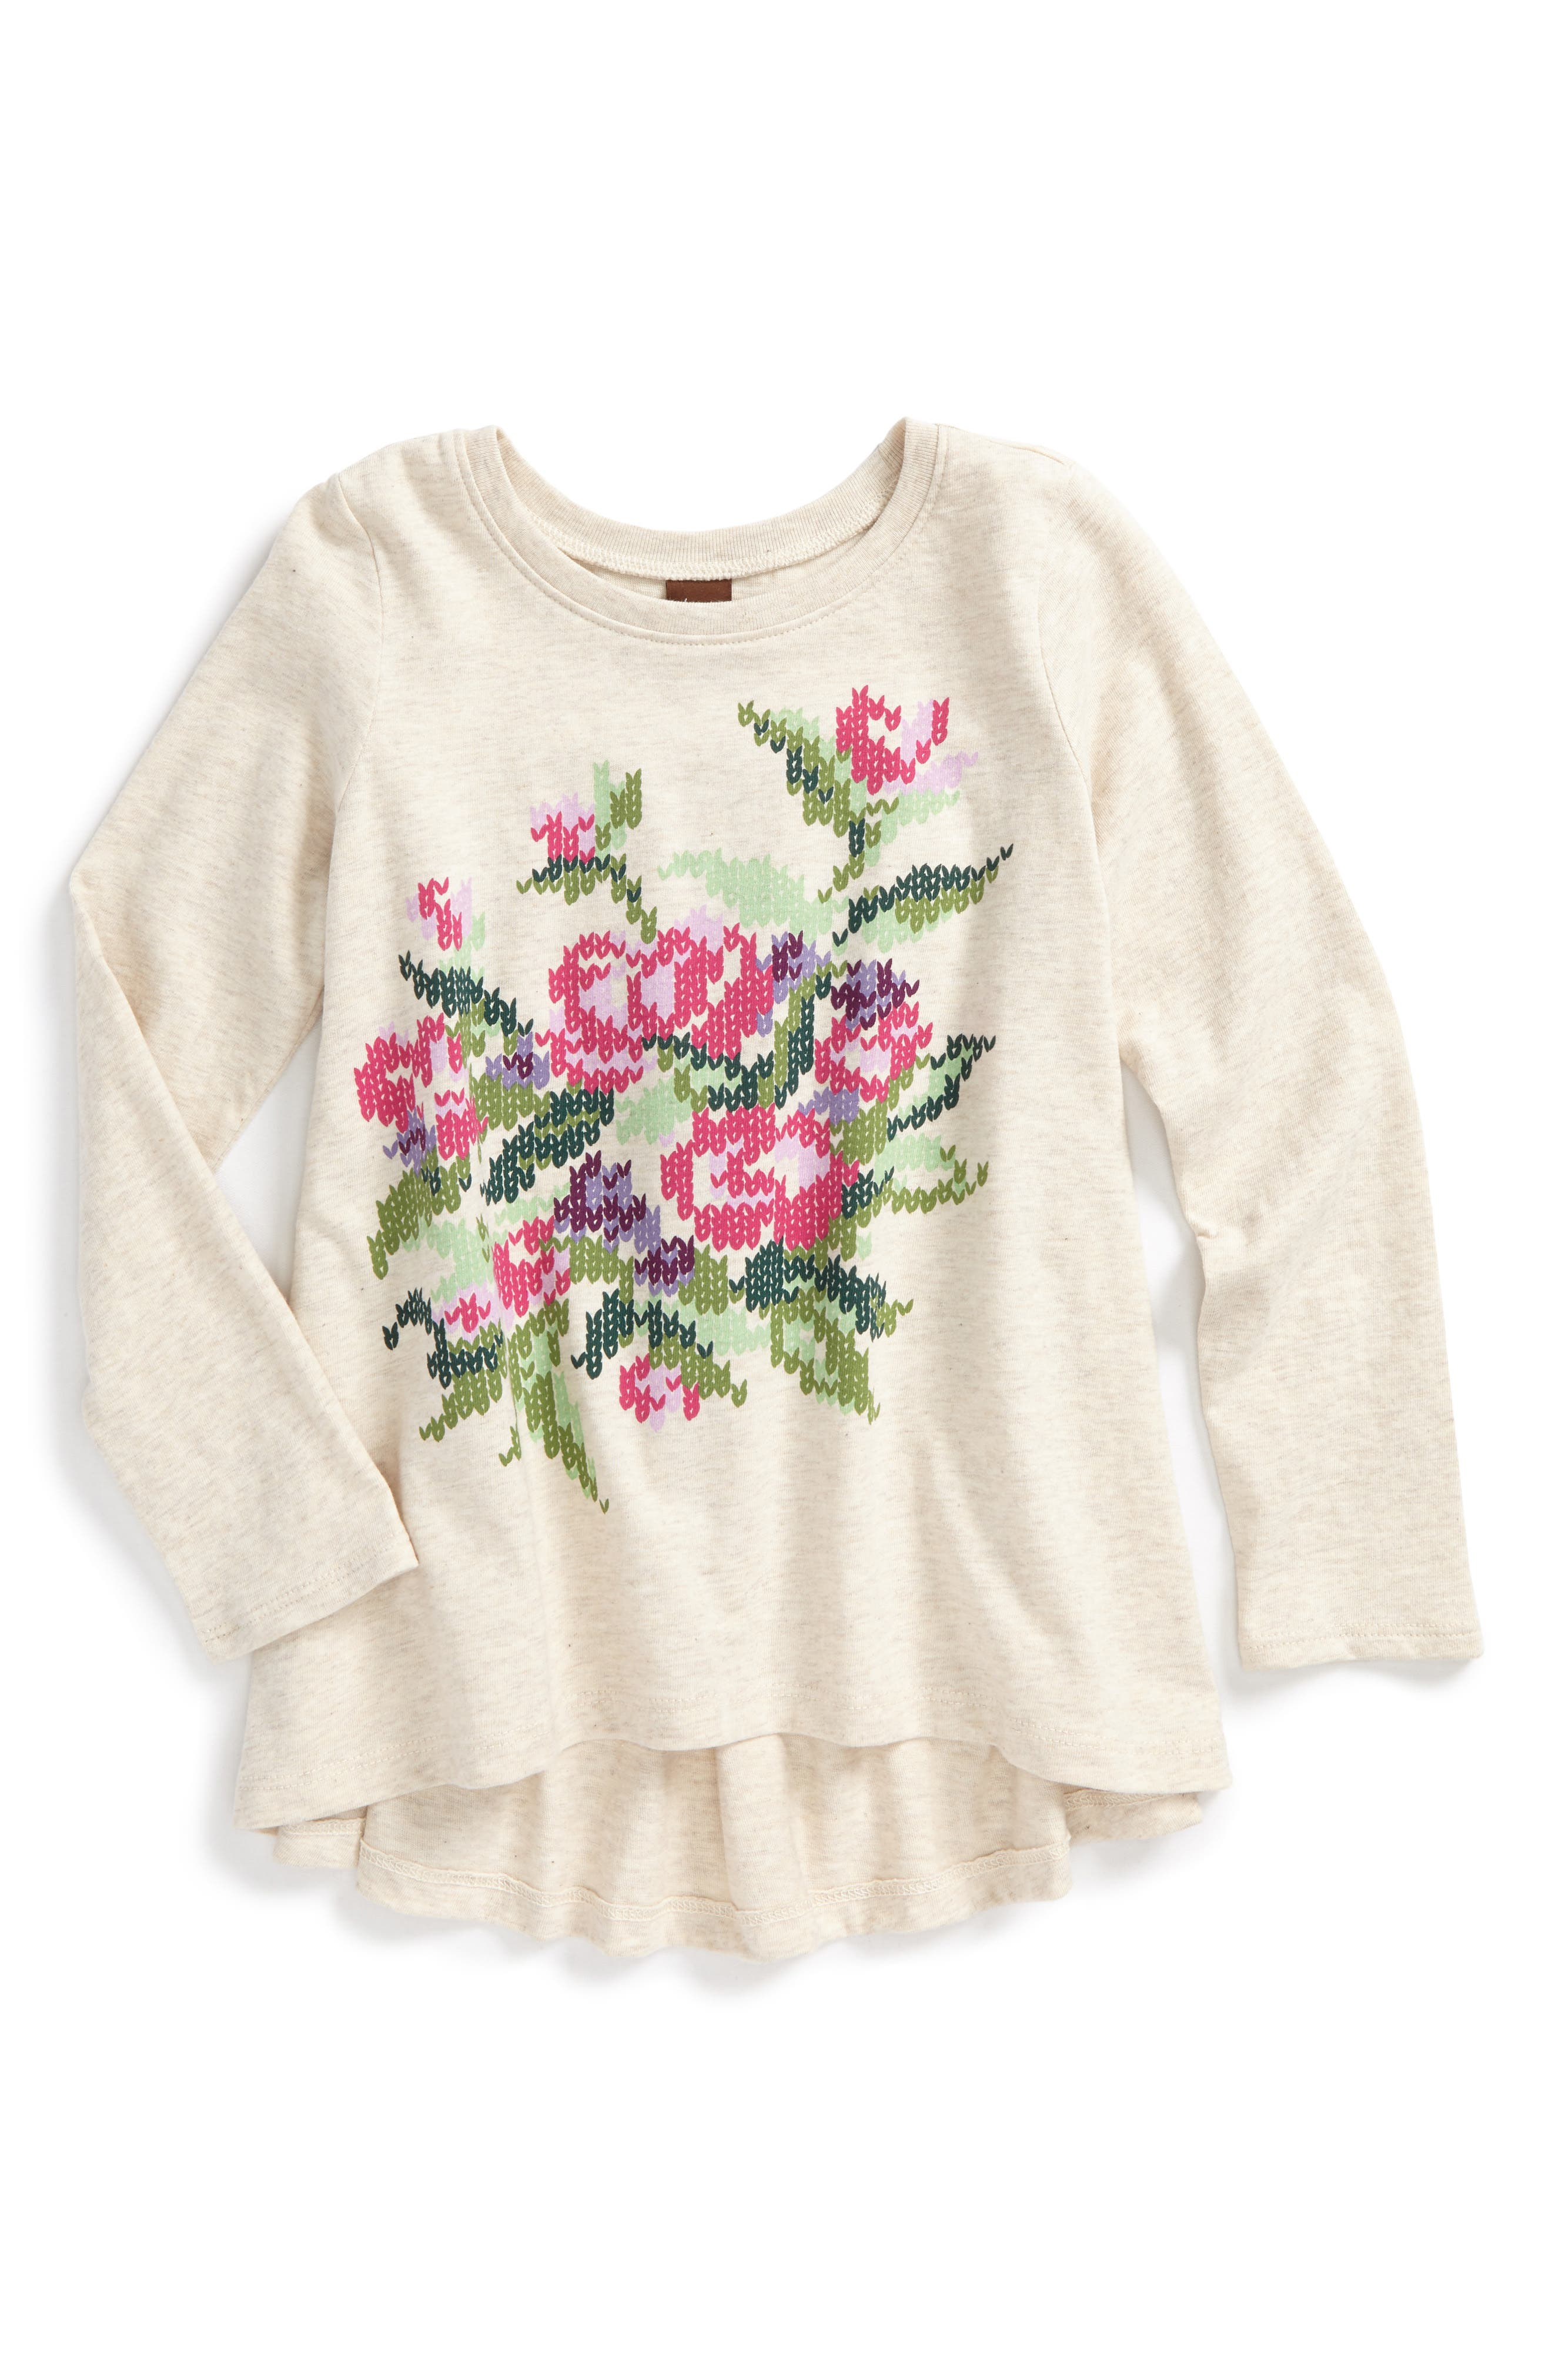 Main Image - Tea Collection Sweet Pea High/Low Tee (Toddler Girls, Little Girls & Big Girls)